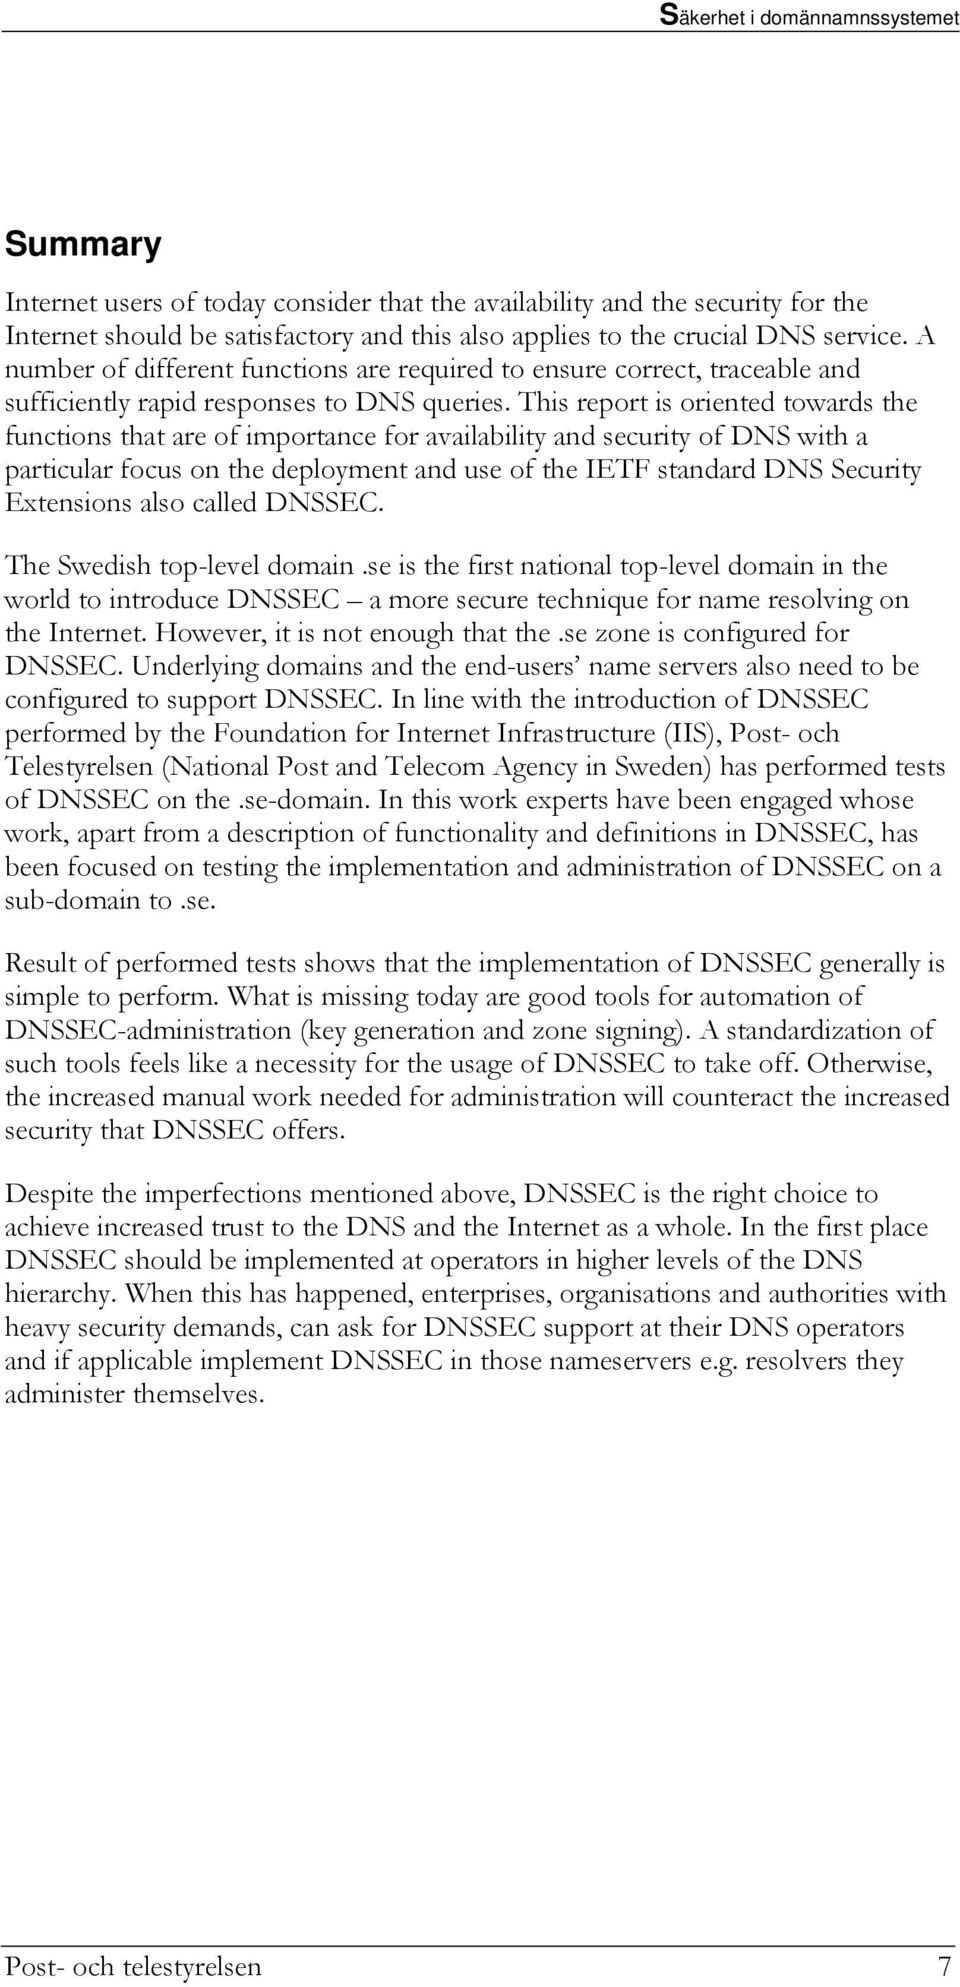 This report is oriented towards the functions that are of importance for availability and security of DNS with a particular focus on the deployment and use of the IETF standard DNS Security